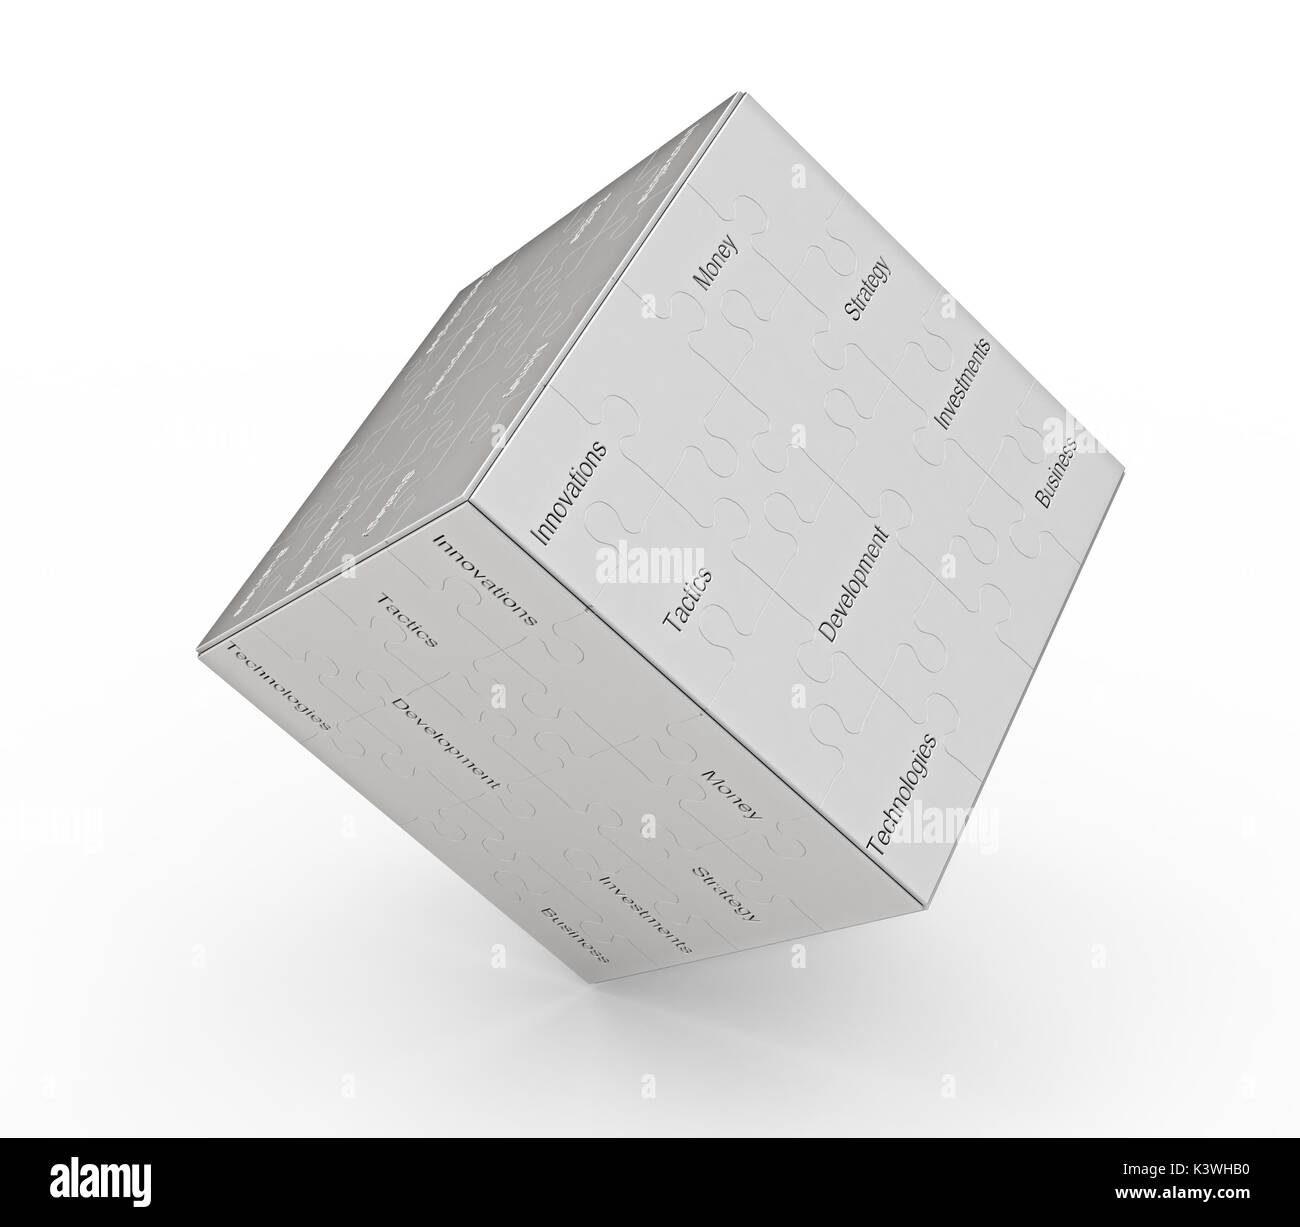 Business cube graphic background 3d rendering - Stock Image